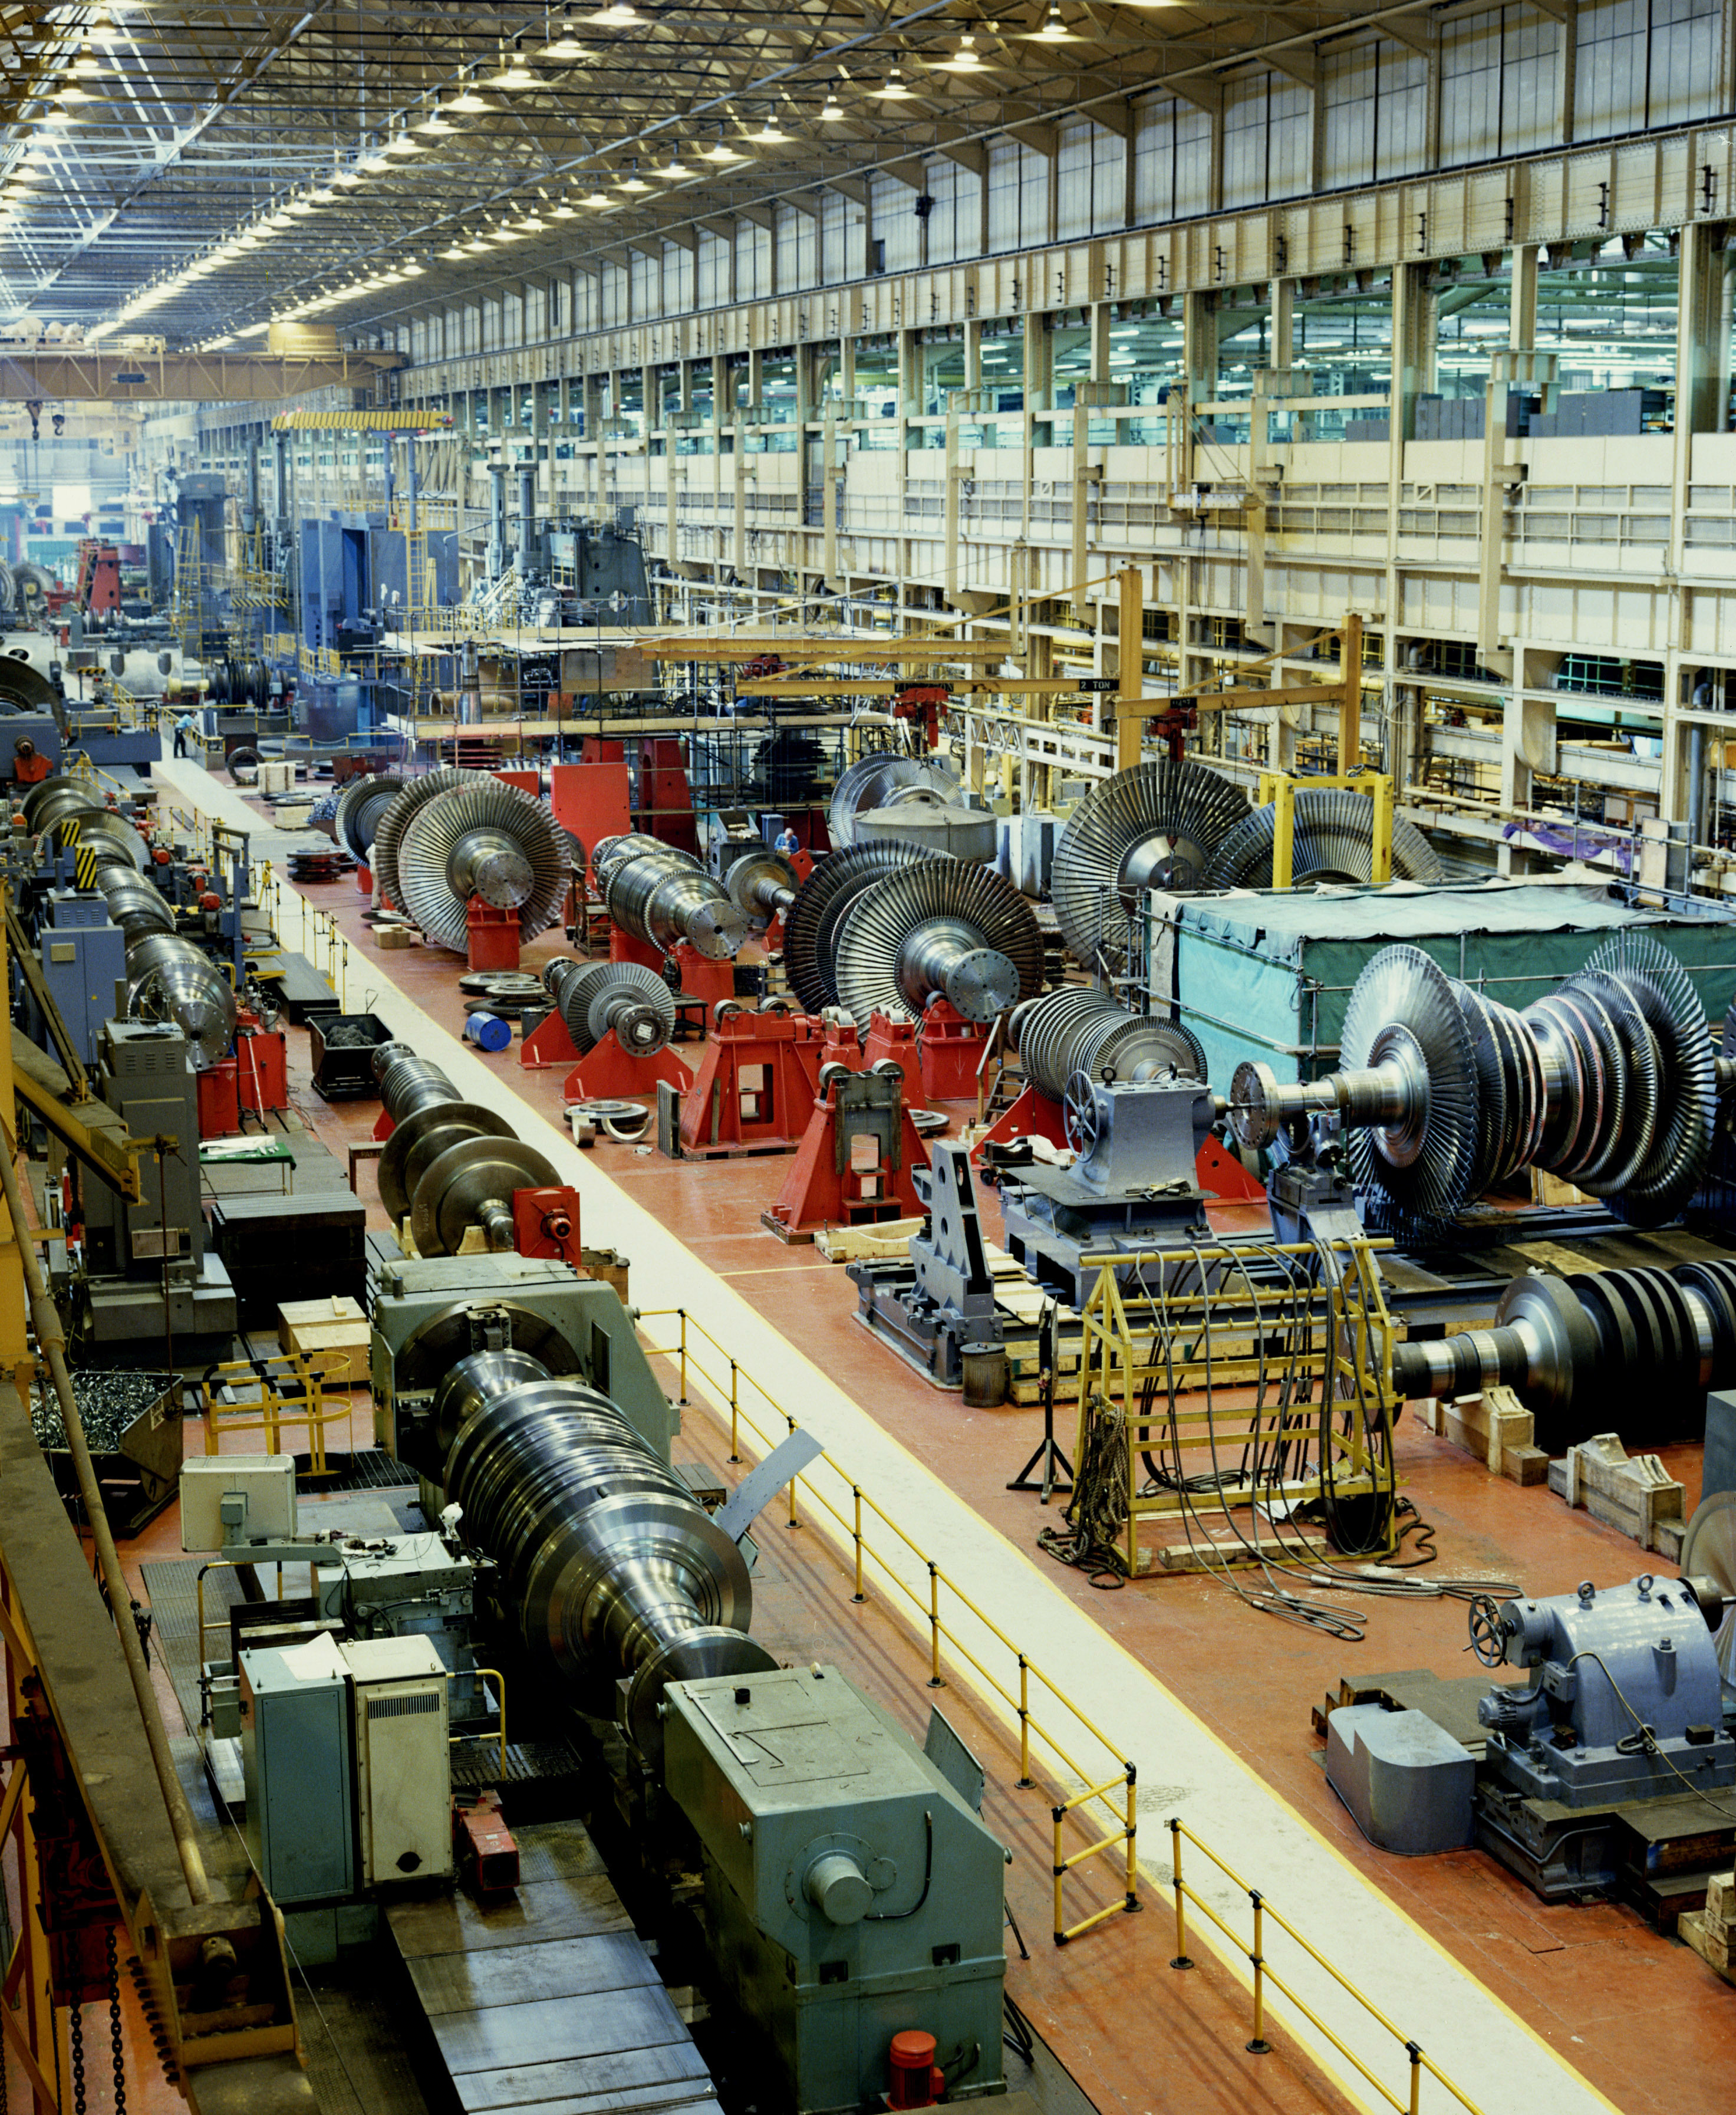 FACTORY production Industrial environments HD Wallpaper